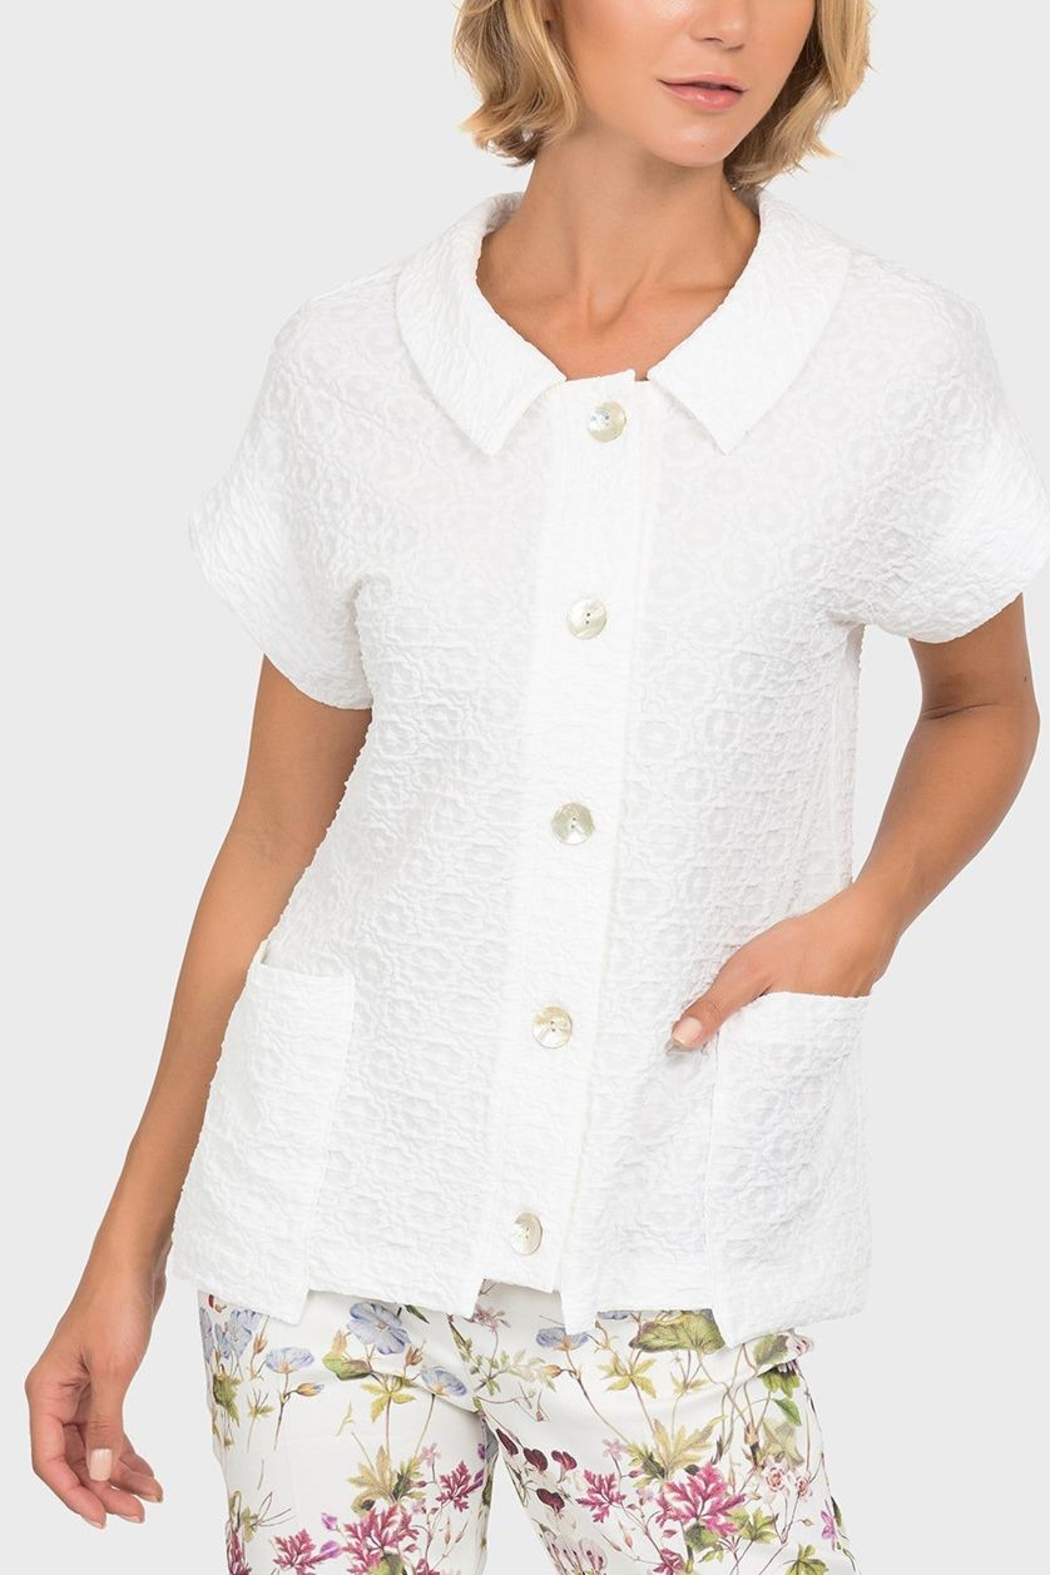 Joseph Ribkoff White Short-Sleeve Top - Main Image